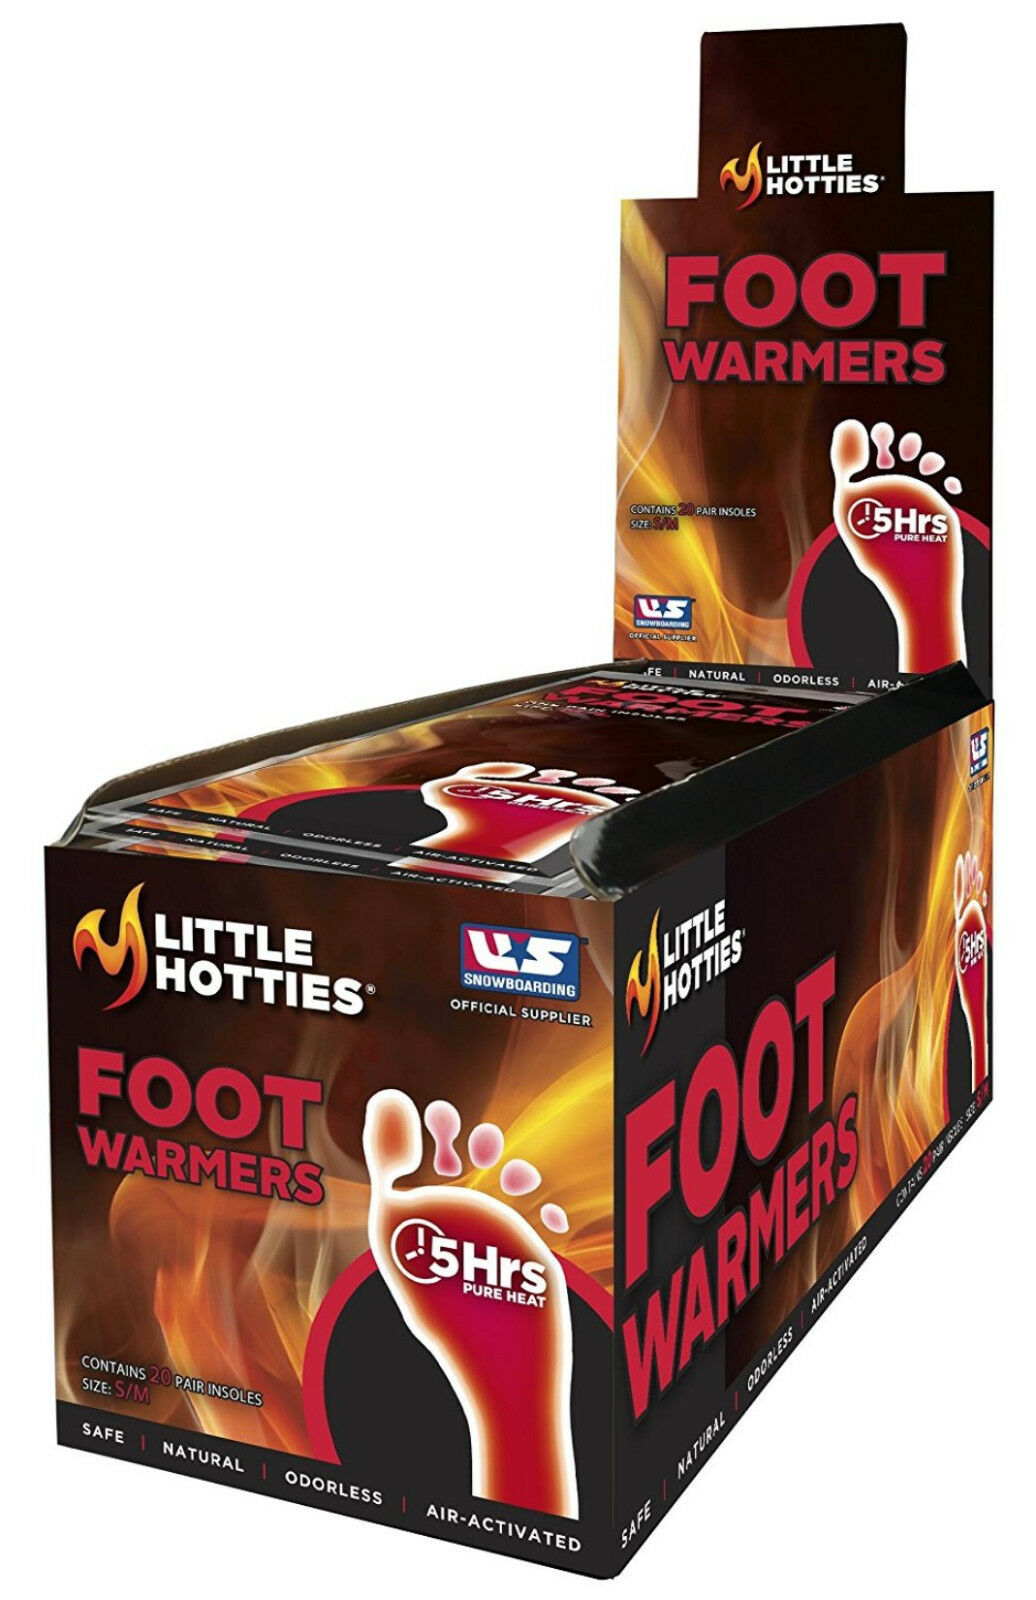 Little Hotties 5-Hour Insole Foot Warmer, Pack of 20 Pair, Medium Large NEW